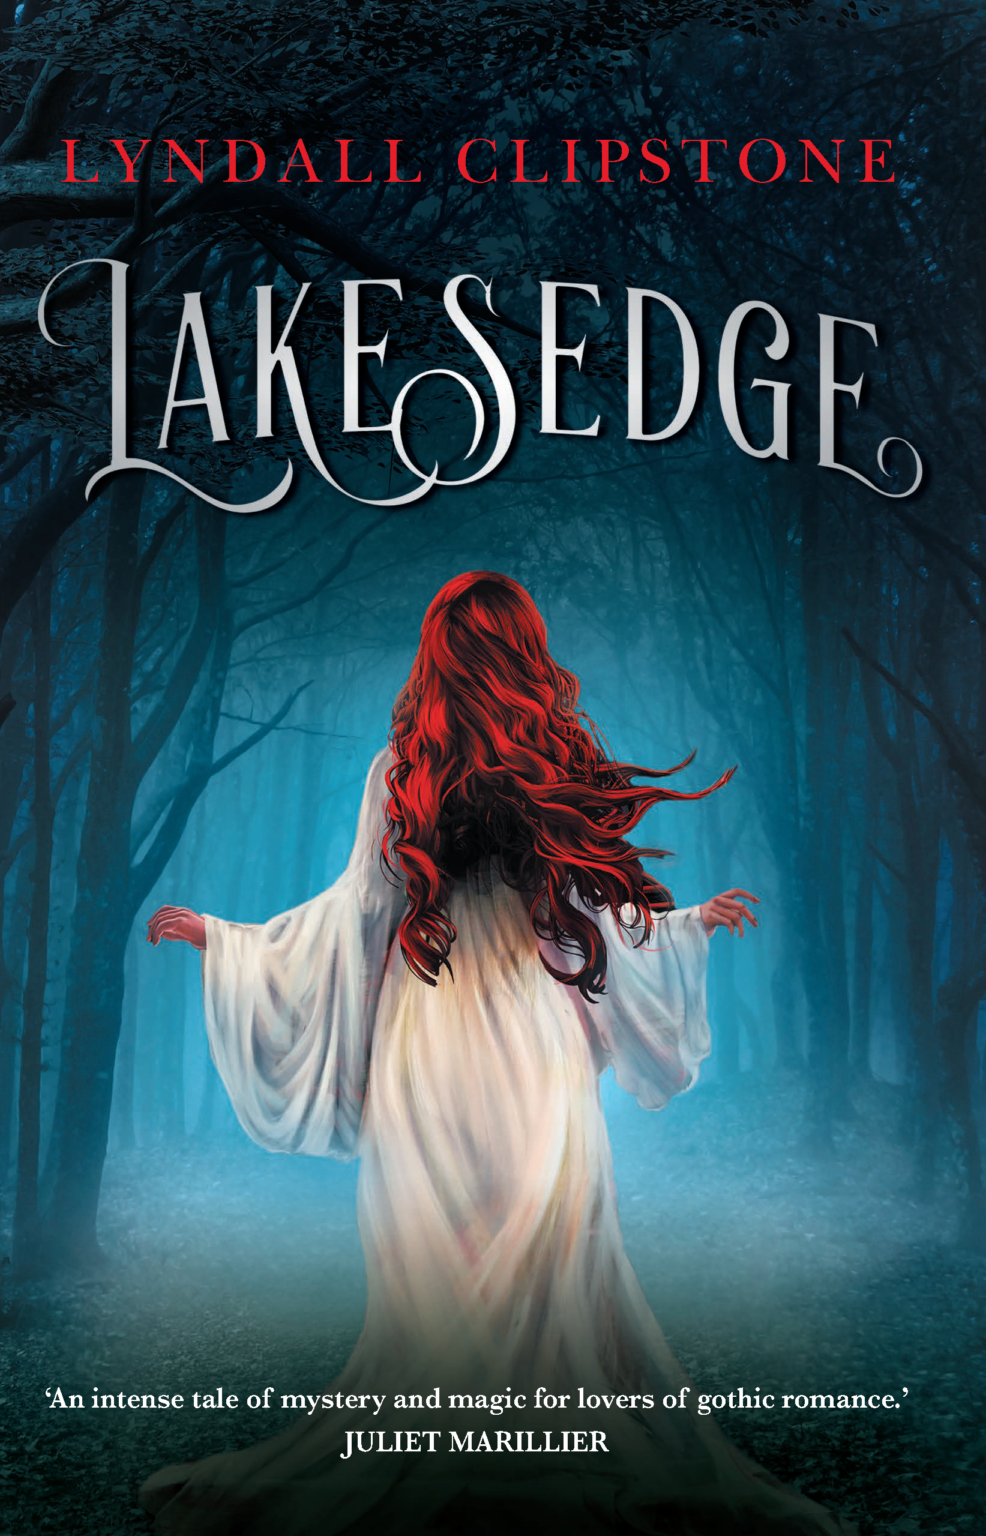 The cover of the book 'Lakesedge' by Lyndall Clipstone